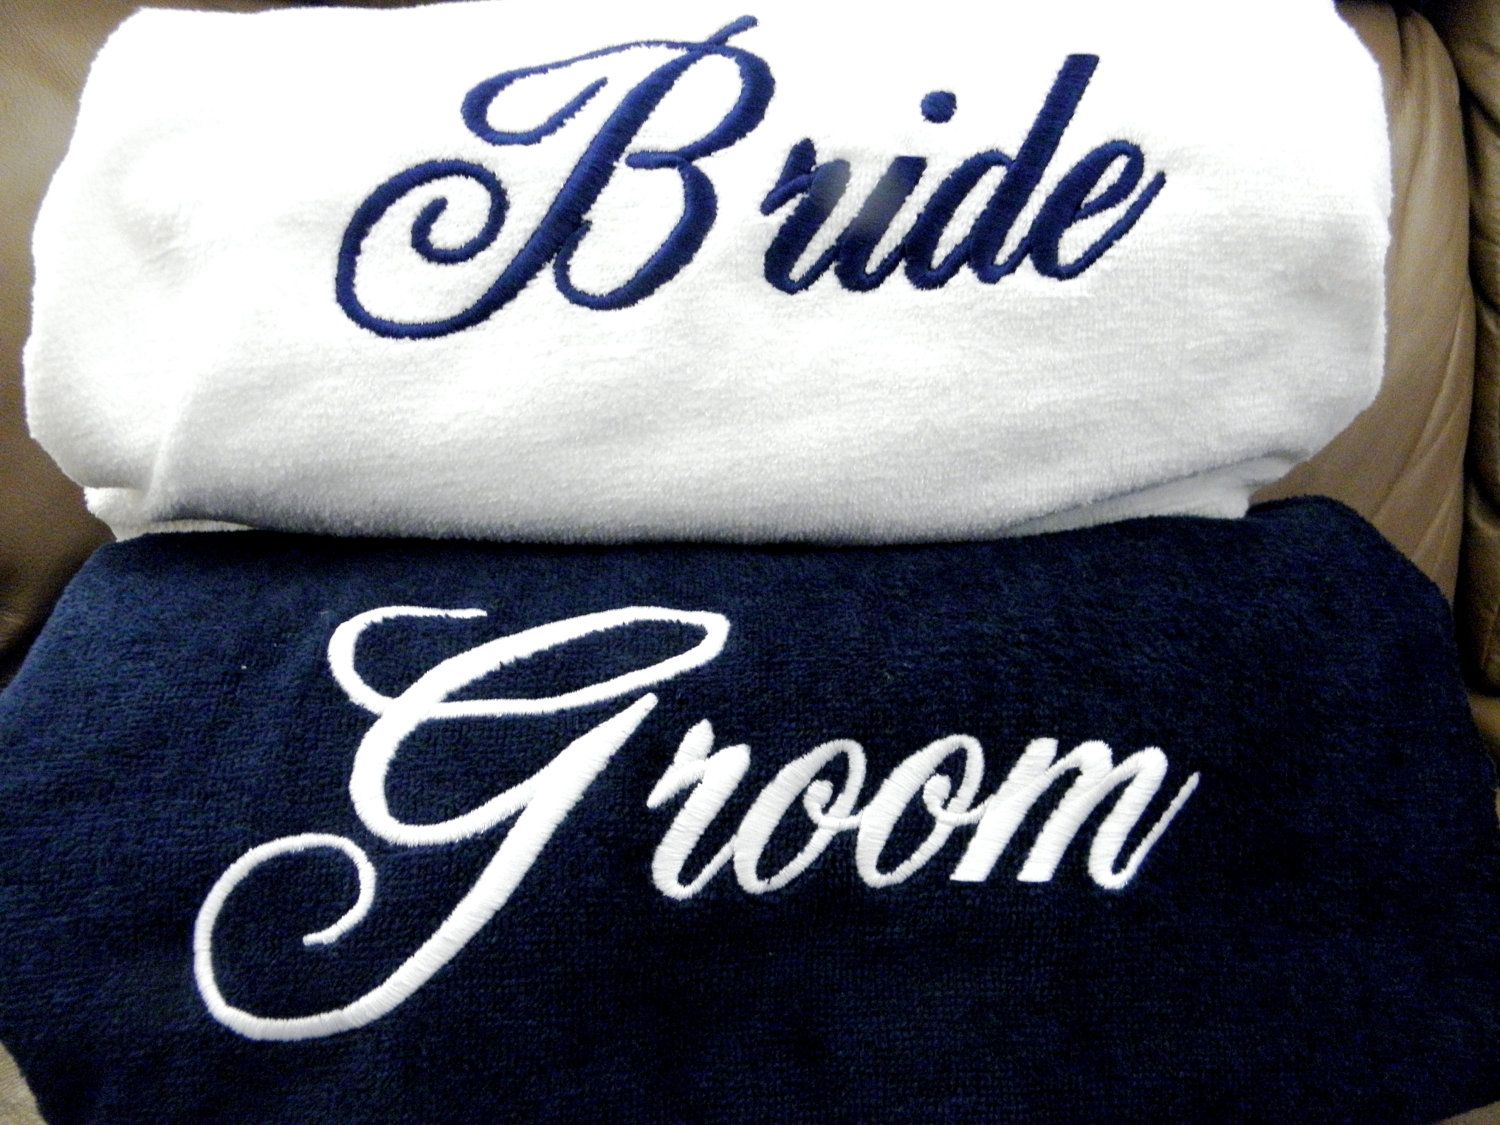 Custom Towels, hand towel, bathroom, personalized gift, embroidered towels, towel  set, bathroom decor, Monogrammed towel. august ave, grey